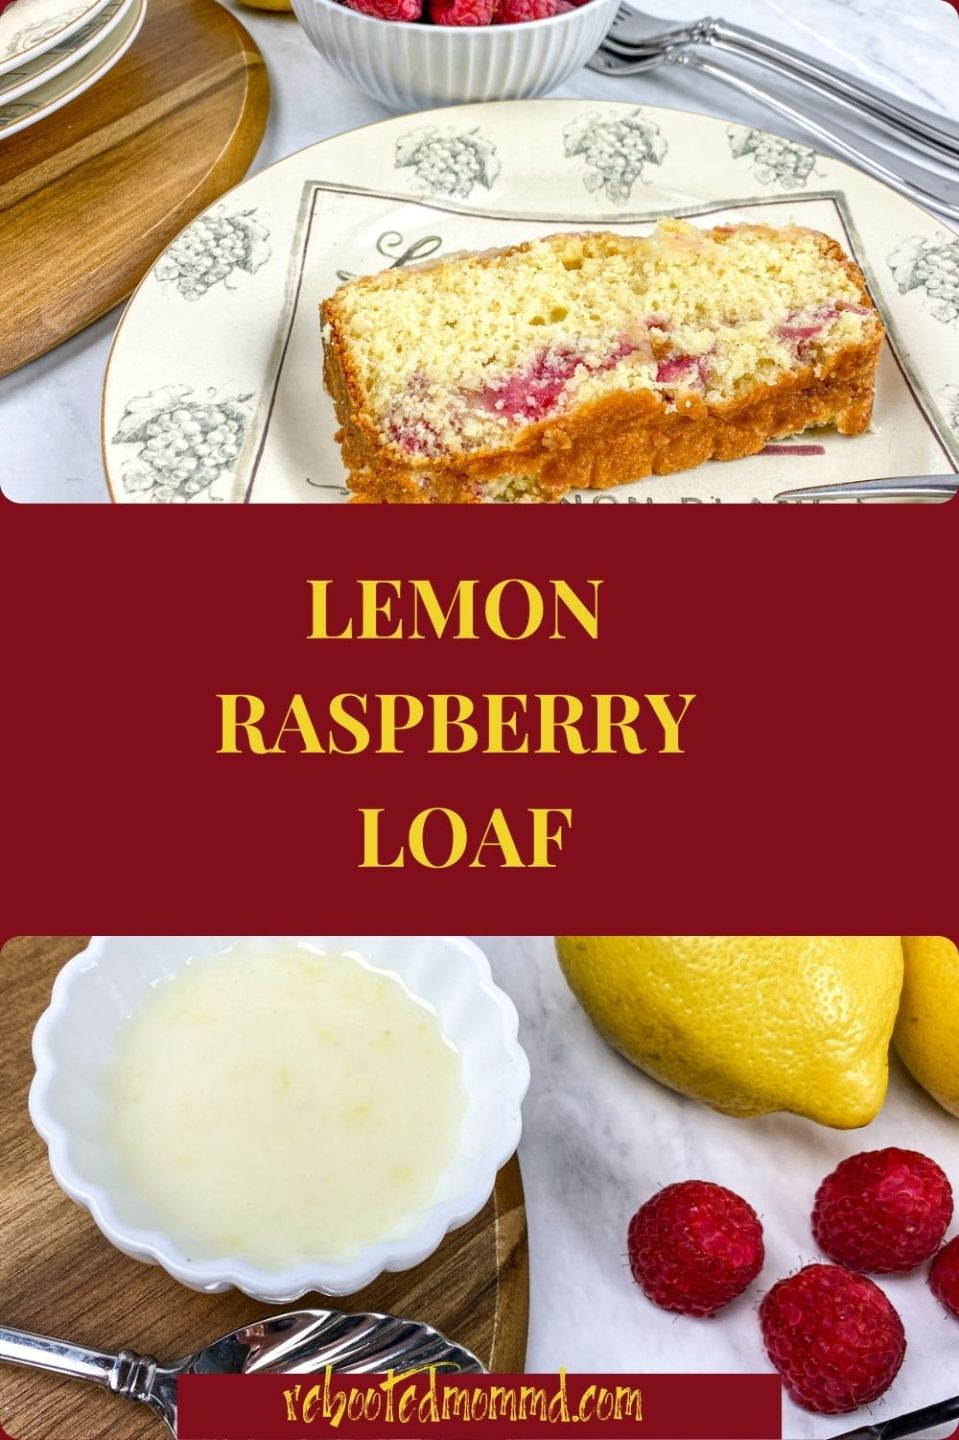 It\'s National Dessert Day: Lemon Raspberry Loaf